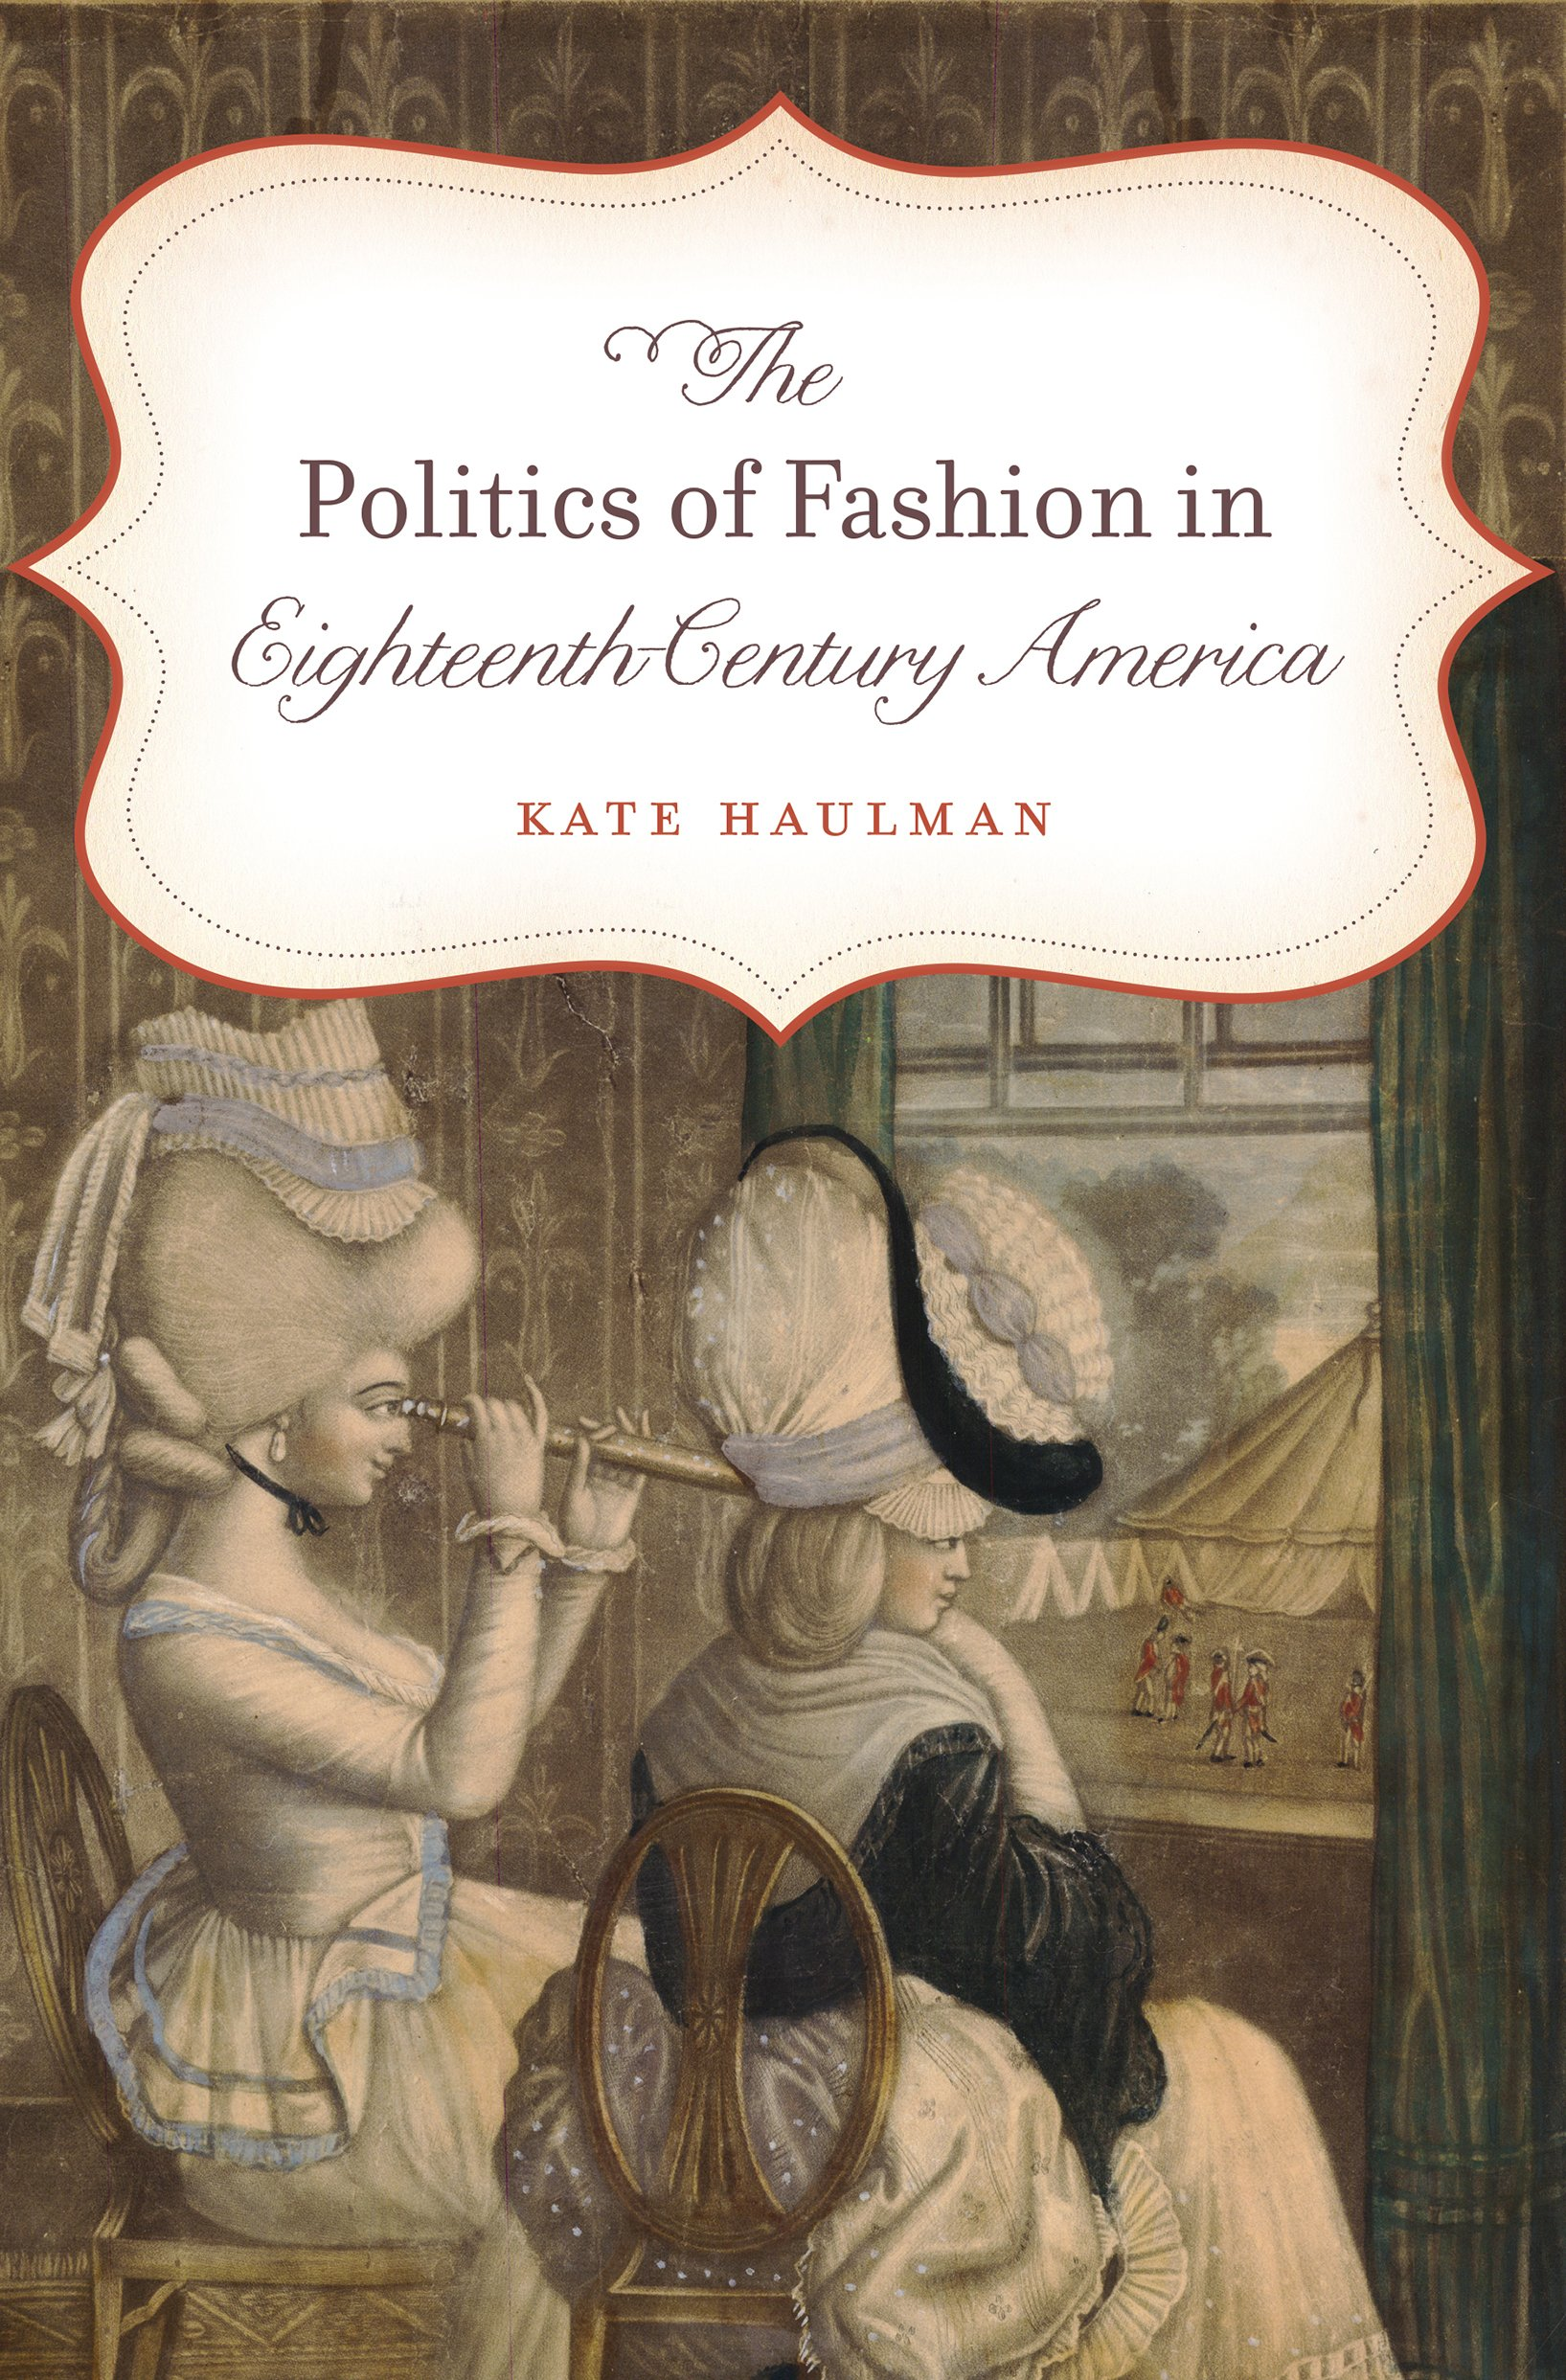 com the politics of fashion in eighteenth century america com the politics of fashion in eighteenth century america gender and american culture 9781469619019 kate haulman books